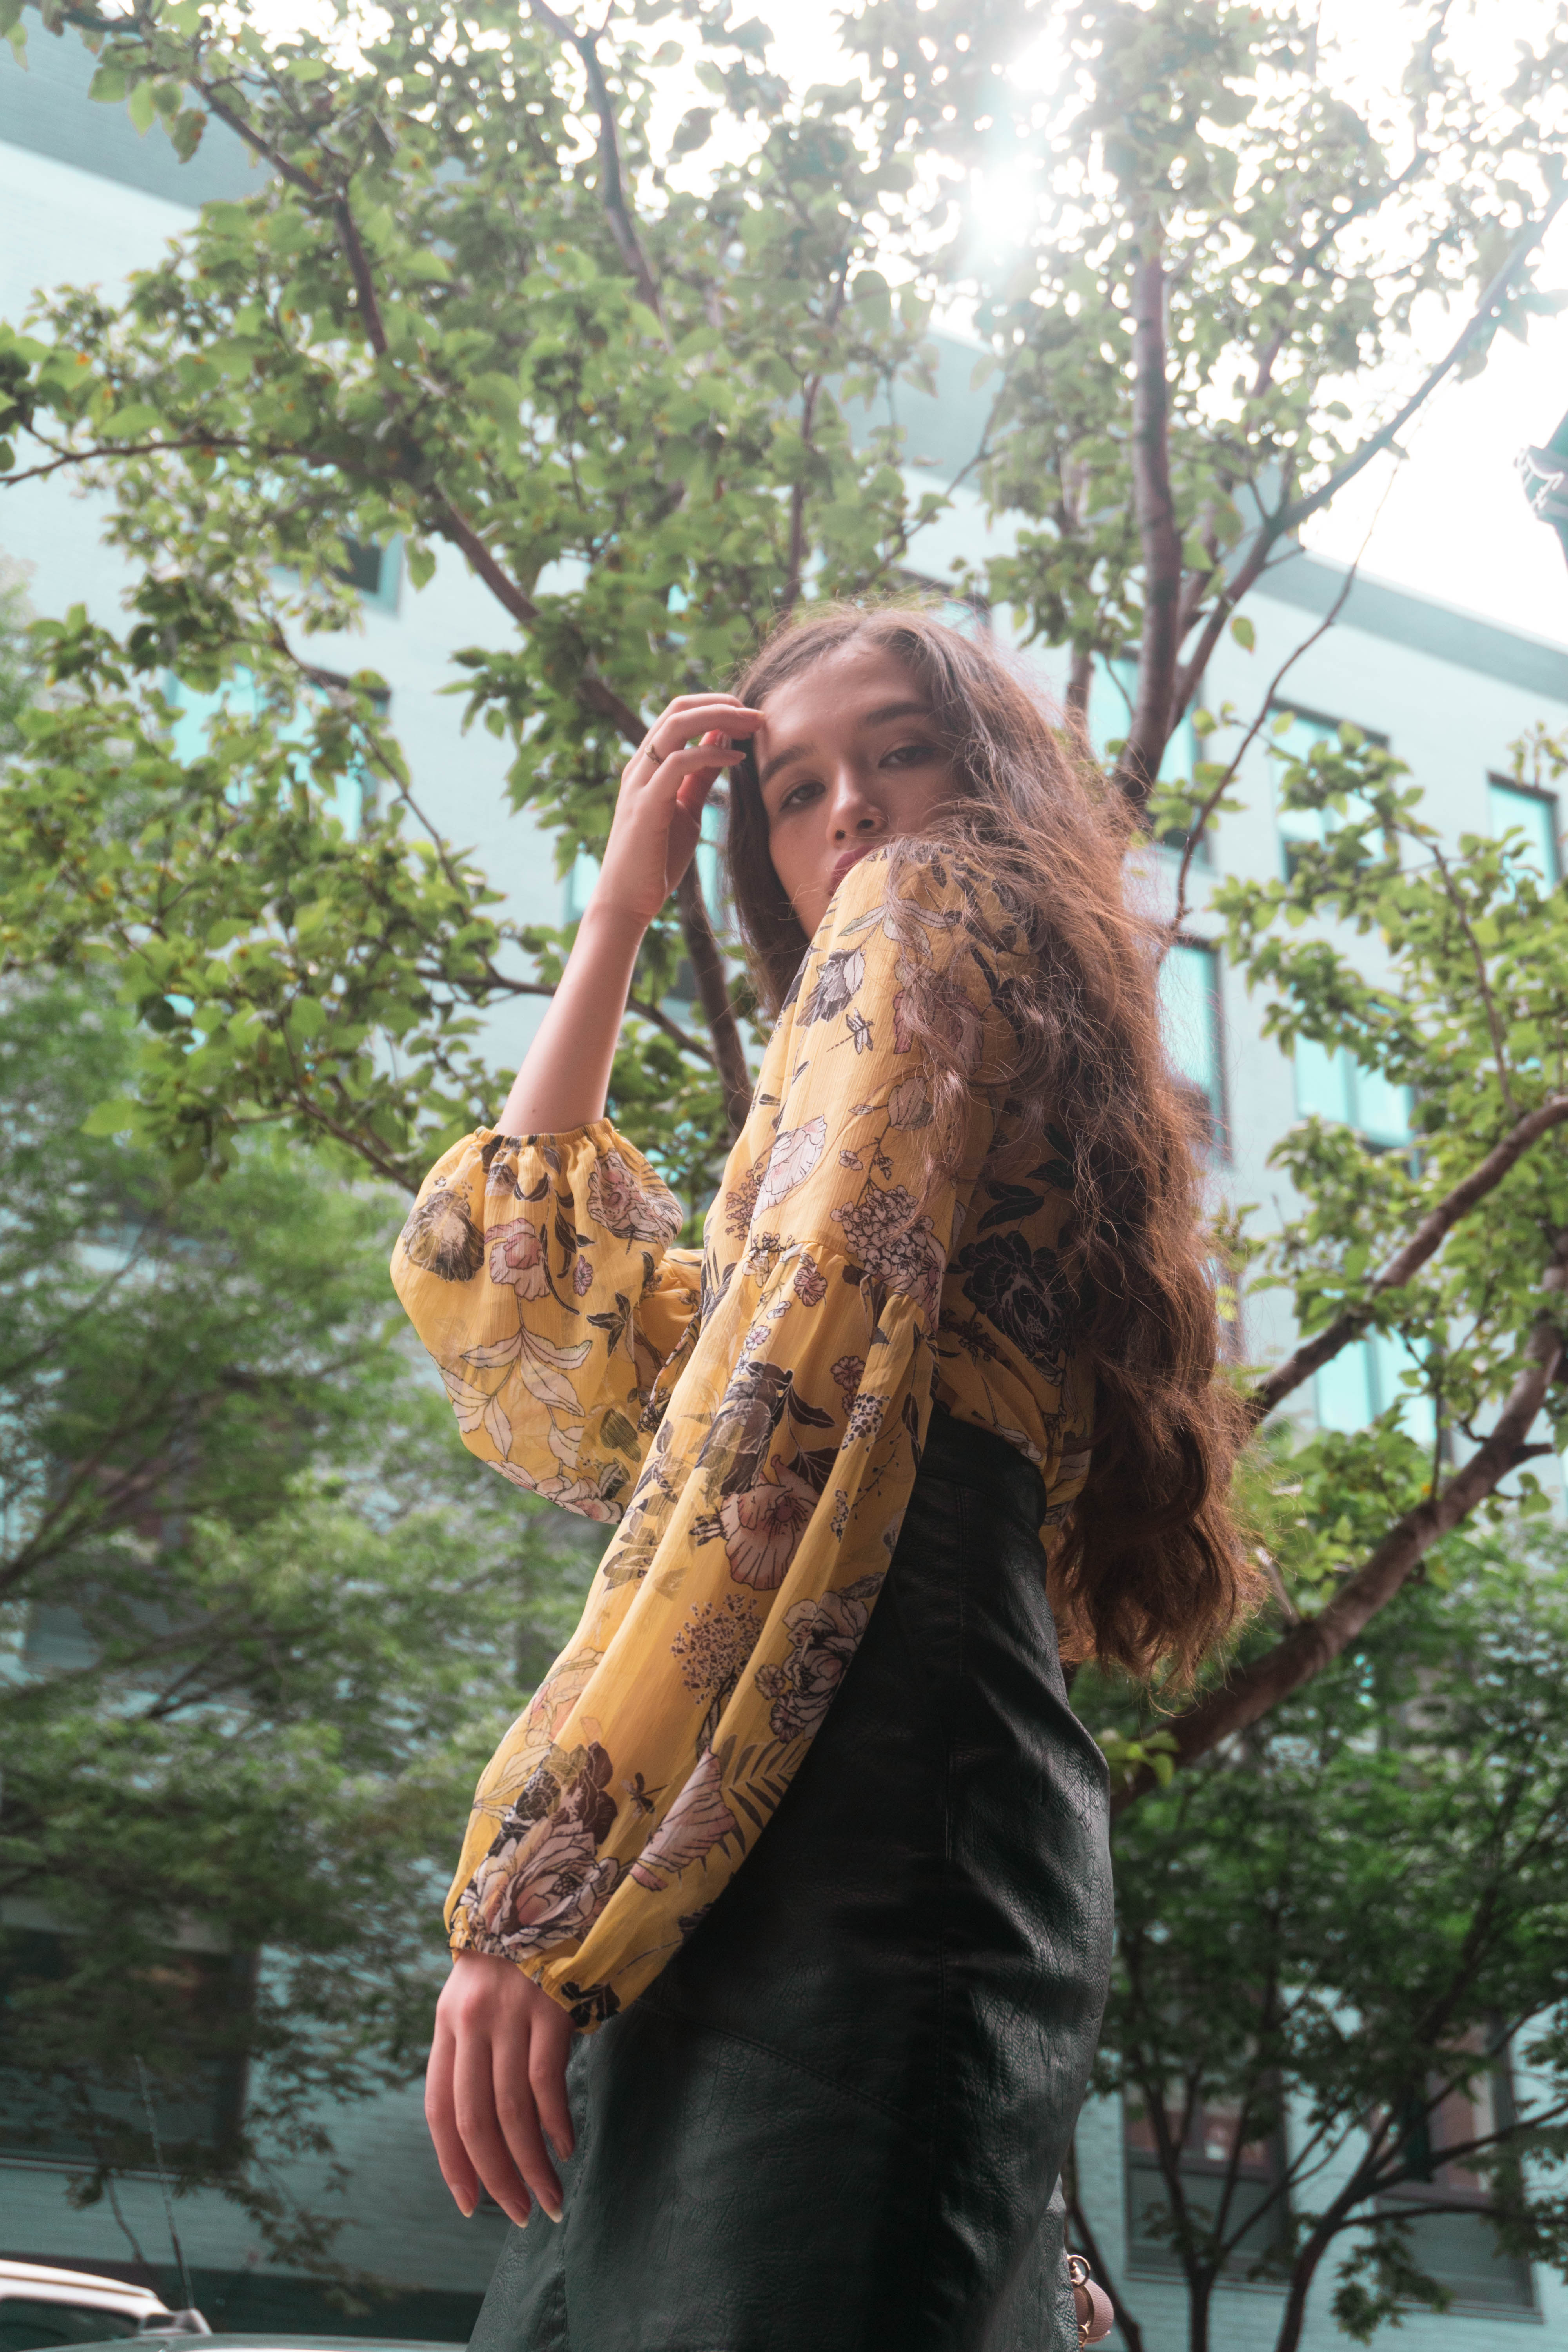 Fashion blogger Eva Phan wearing yellow floral chiffon lantern sleeve top from Target Style and black faux leather mini skirt from Zara in Alphabet City in the East Village in Manhattan girl with long thick hair brunette brown curled with curling wand